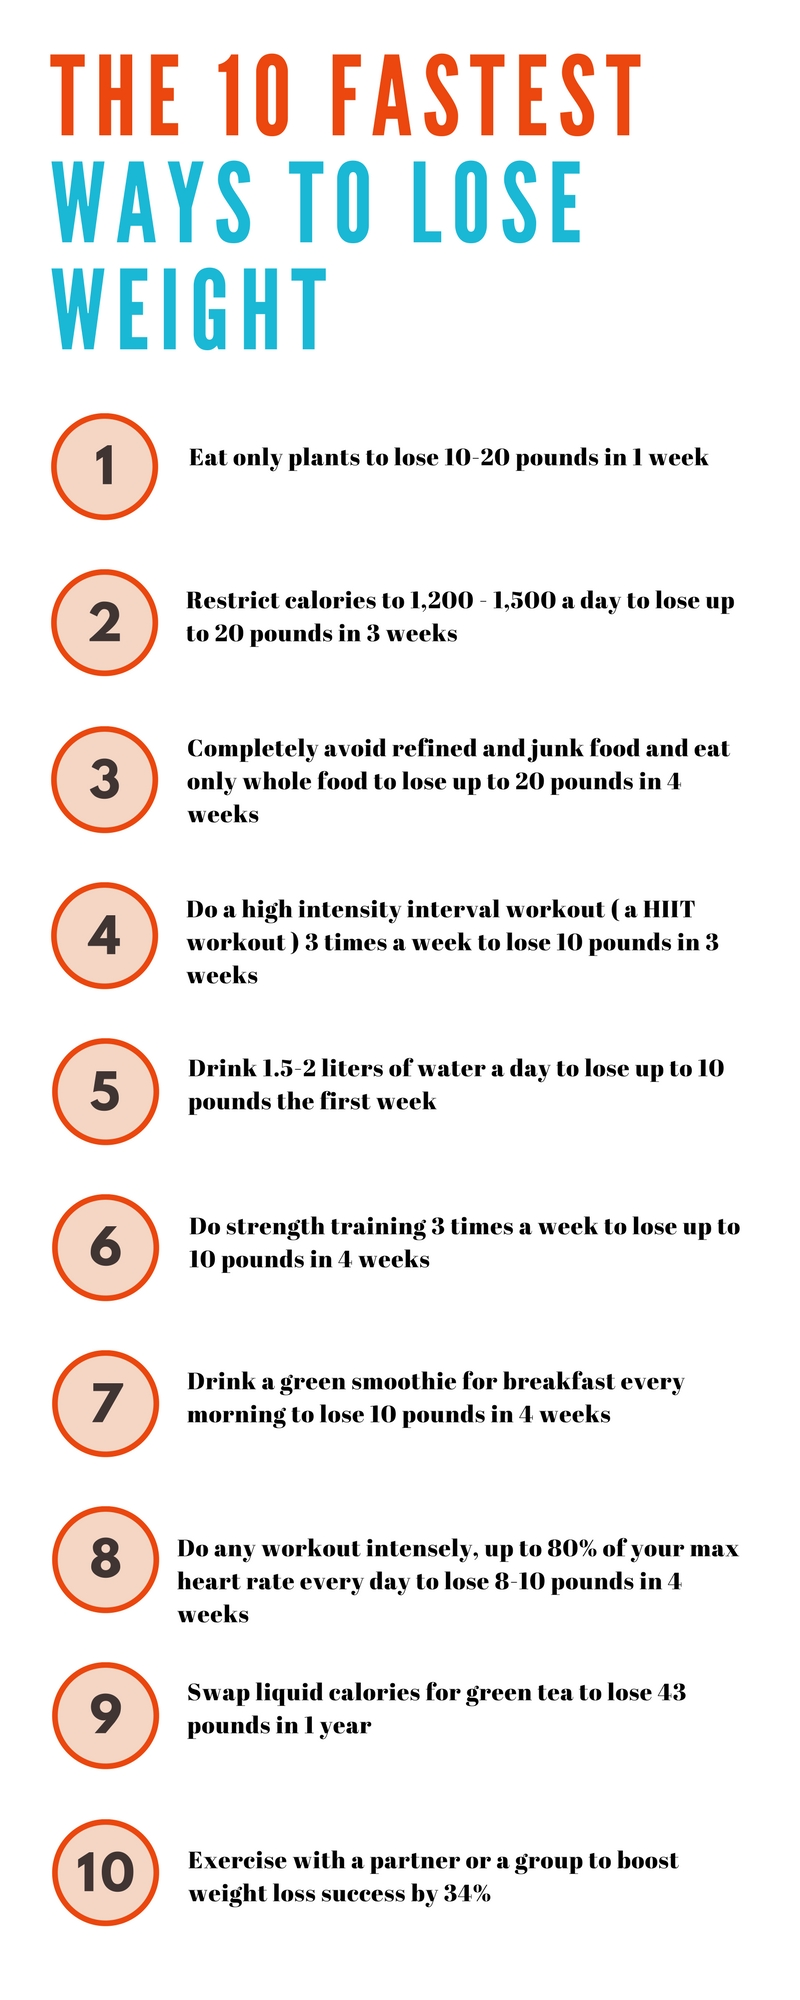 A diet plan to lose 6 pounds in 3 weeks